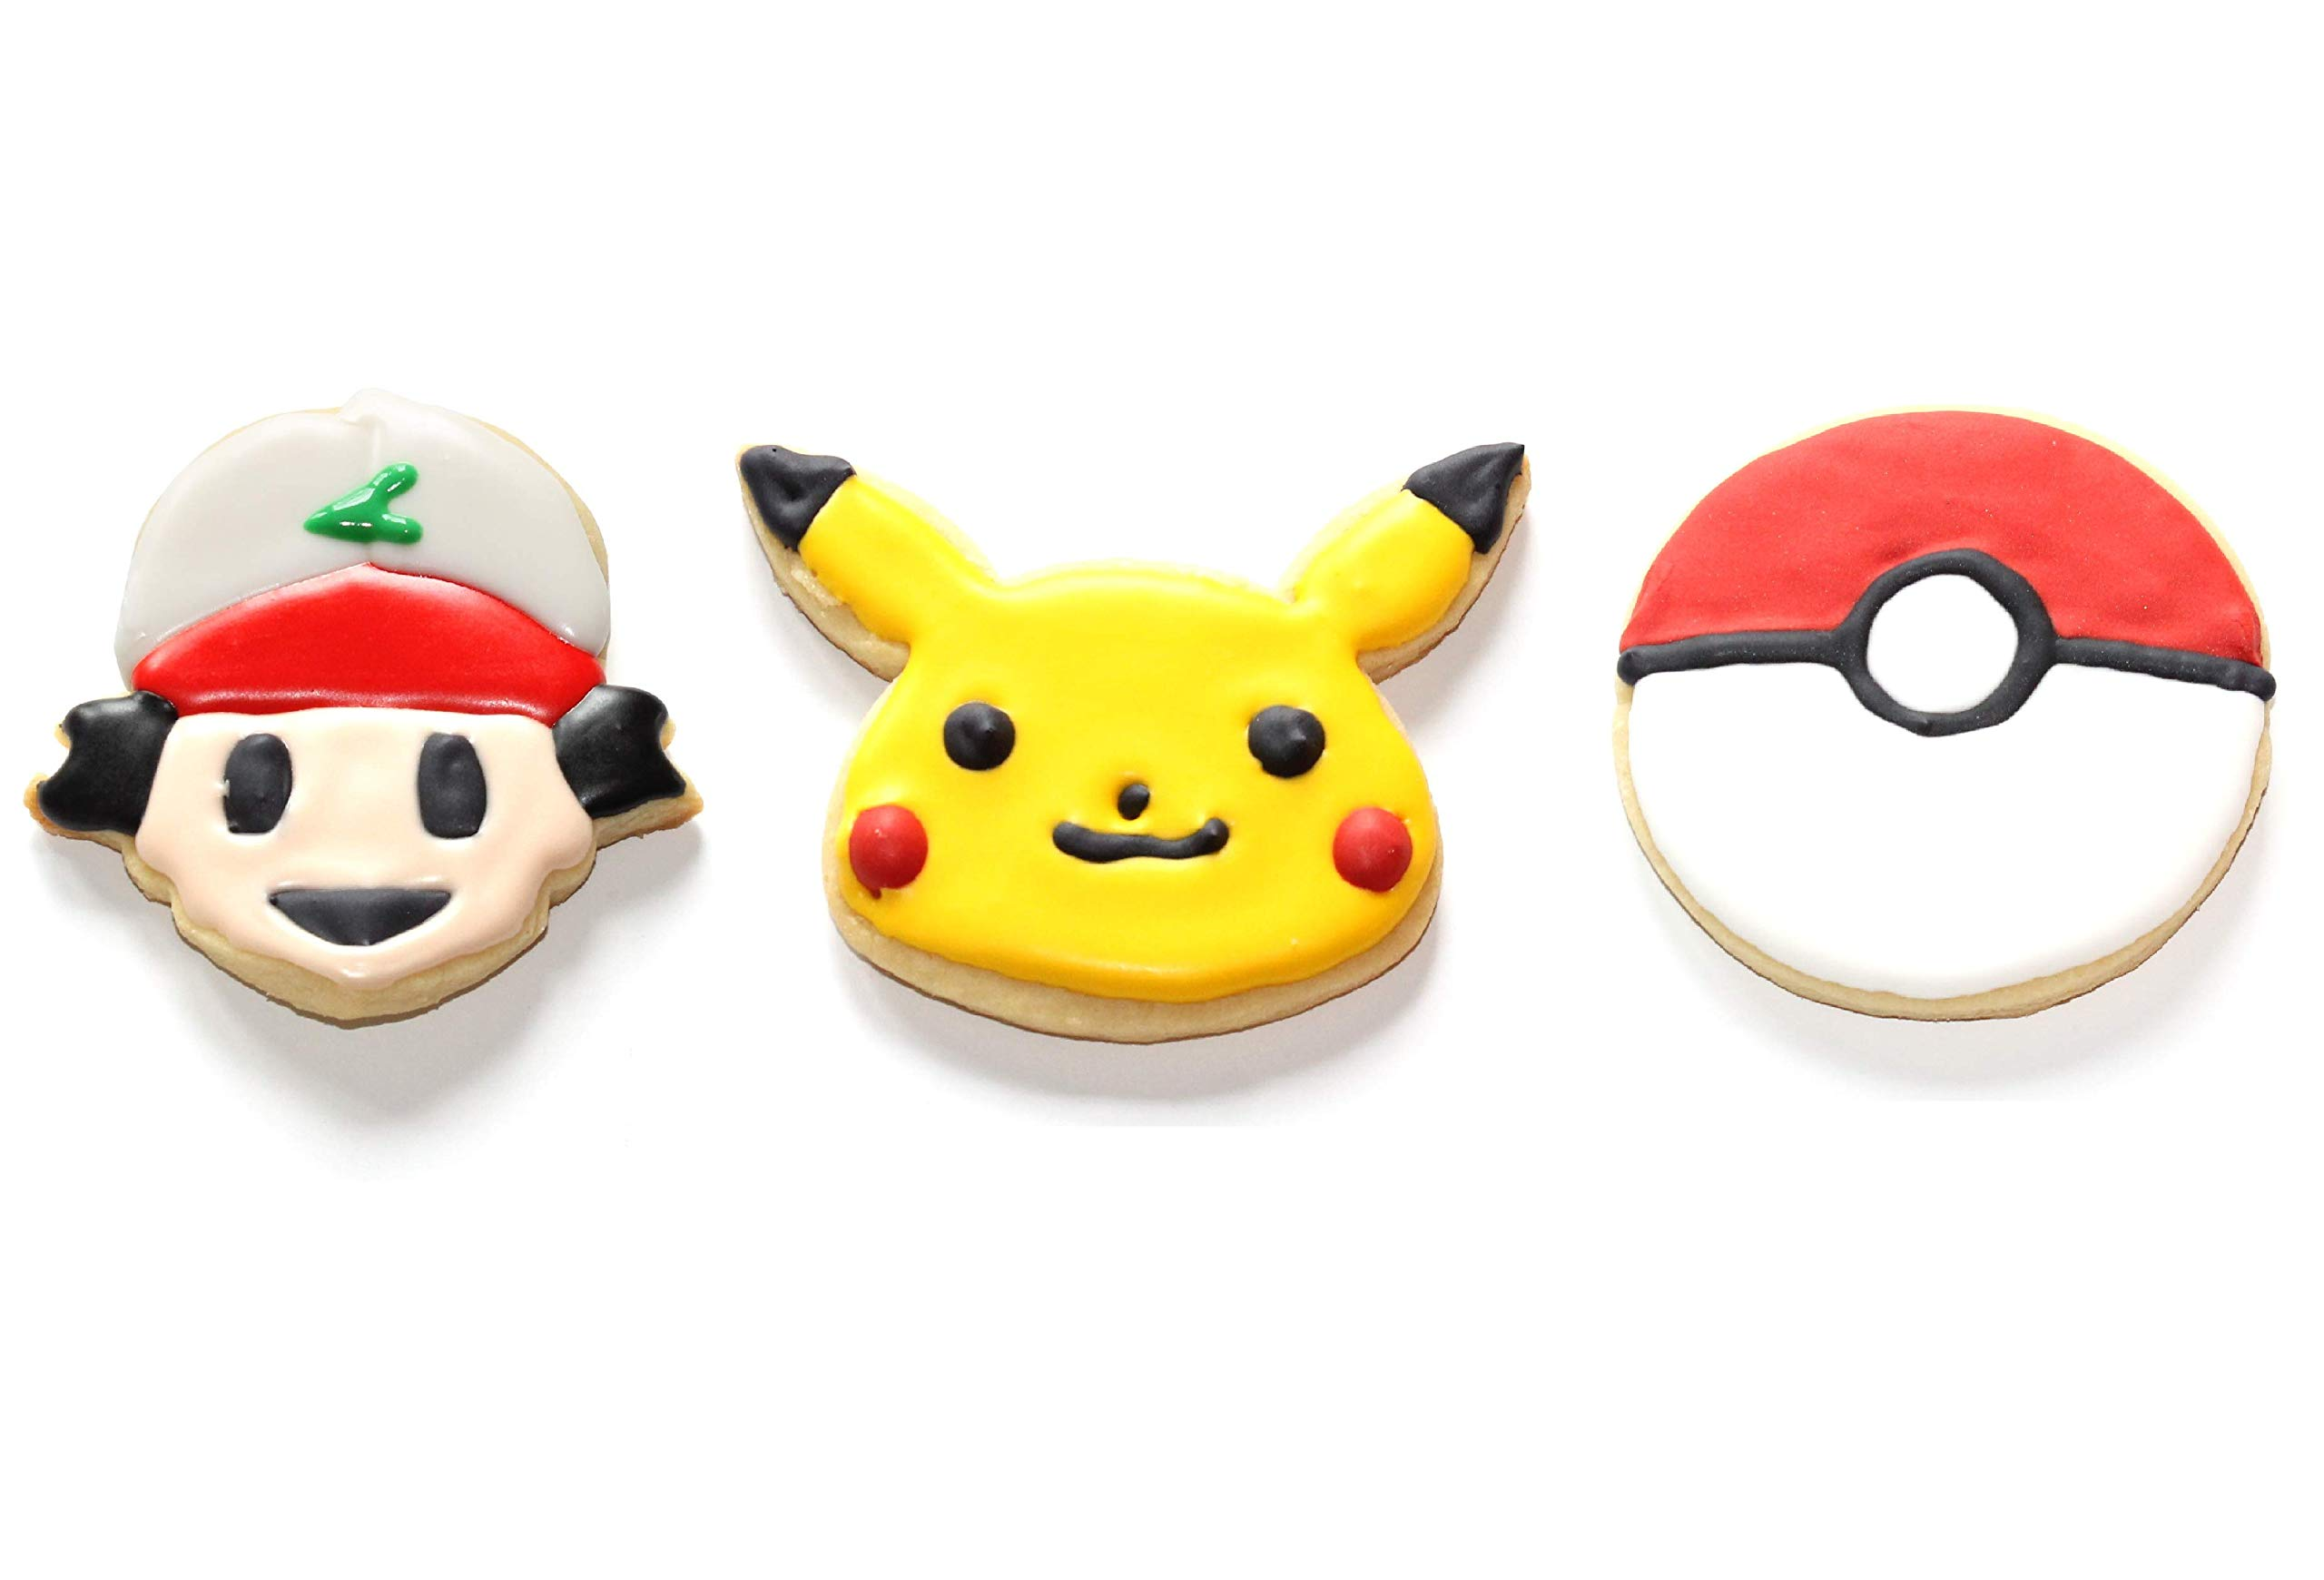 3-Pack Pokemon Cookie Cutters | Pokeball, Ash, Pikachu | Special Edition by cookiemoji baking co. (Image #4)